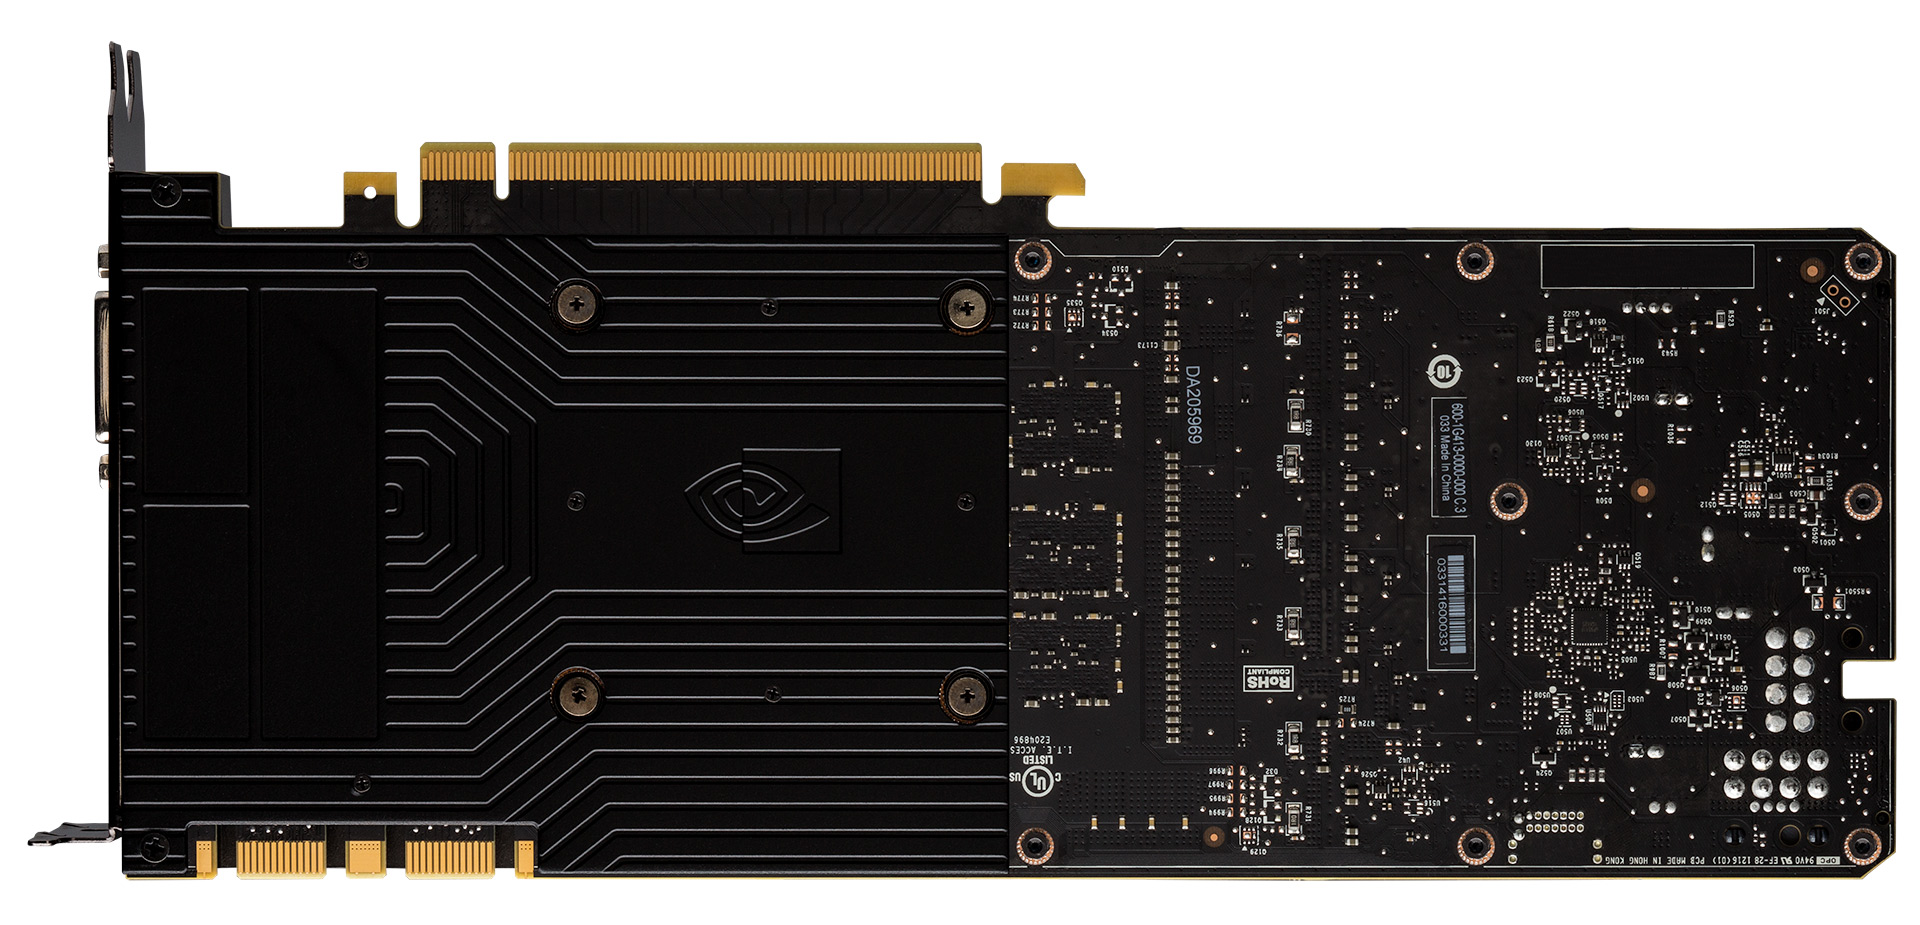 big_geforce-gtx-1080-back-plate-removed.jpg